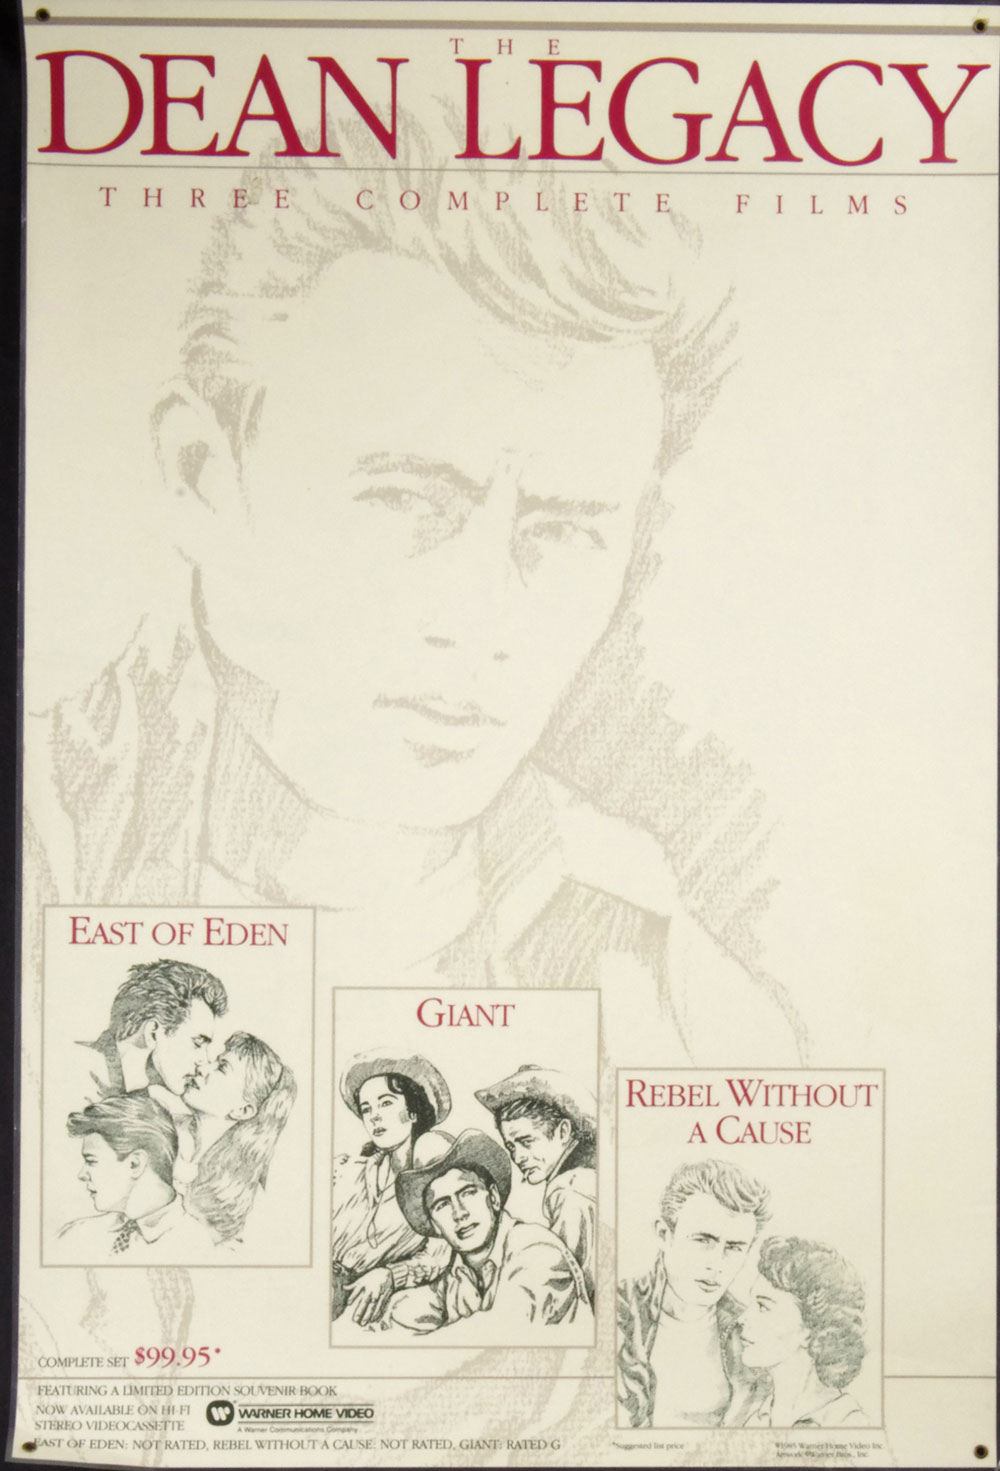 James Dean 1985 The Dean Legacy Home Video Promo Poster Laminated 20 x 30